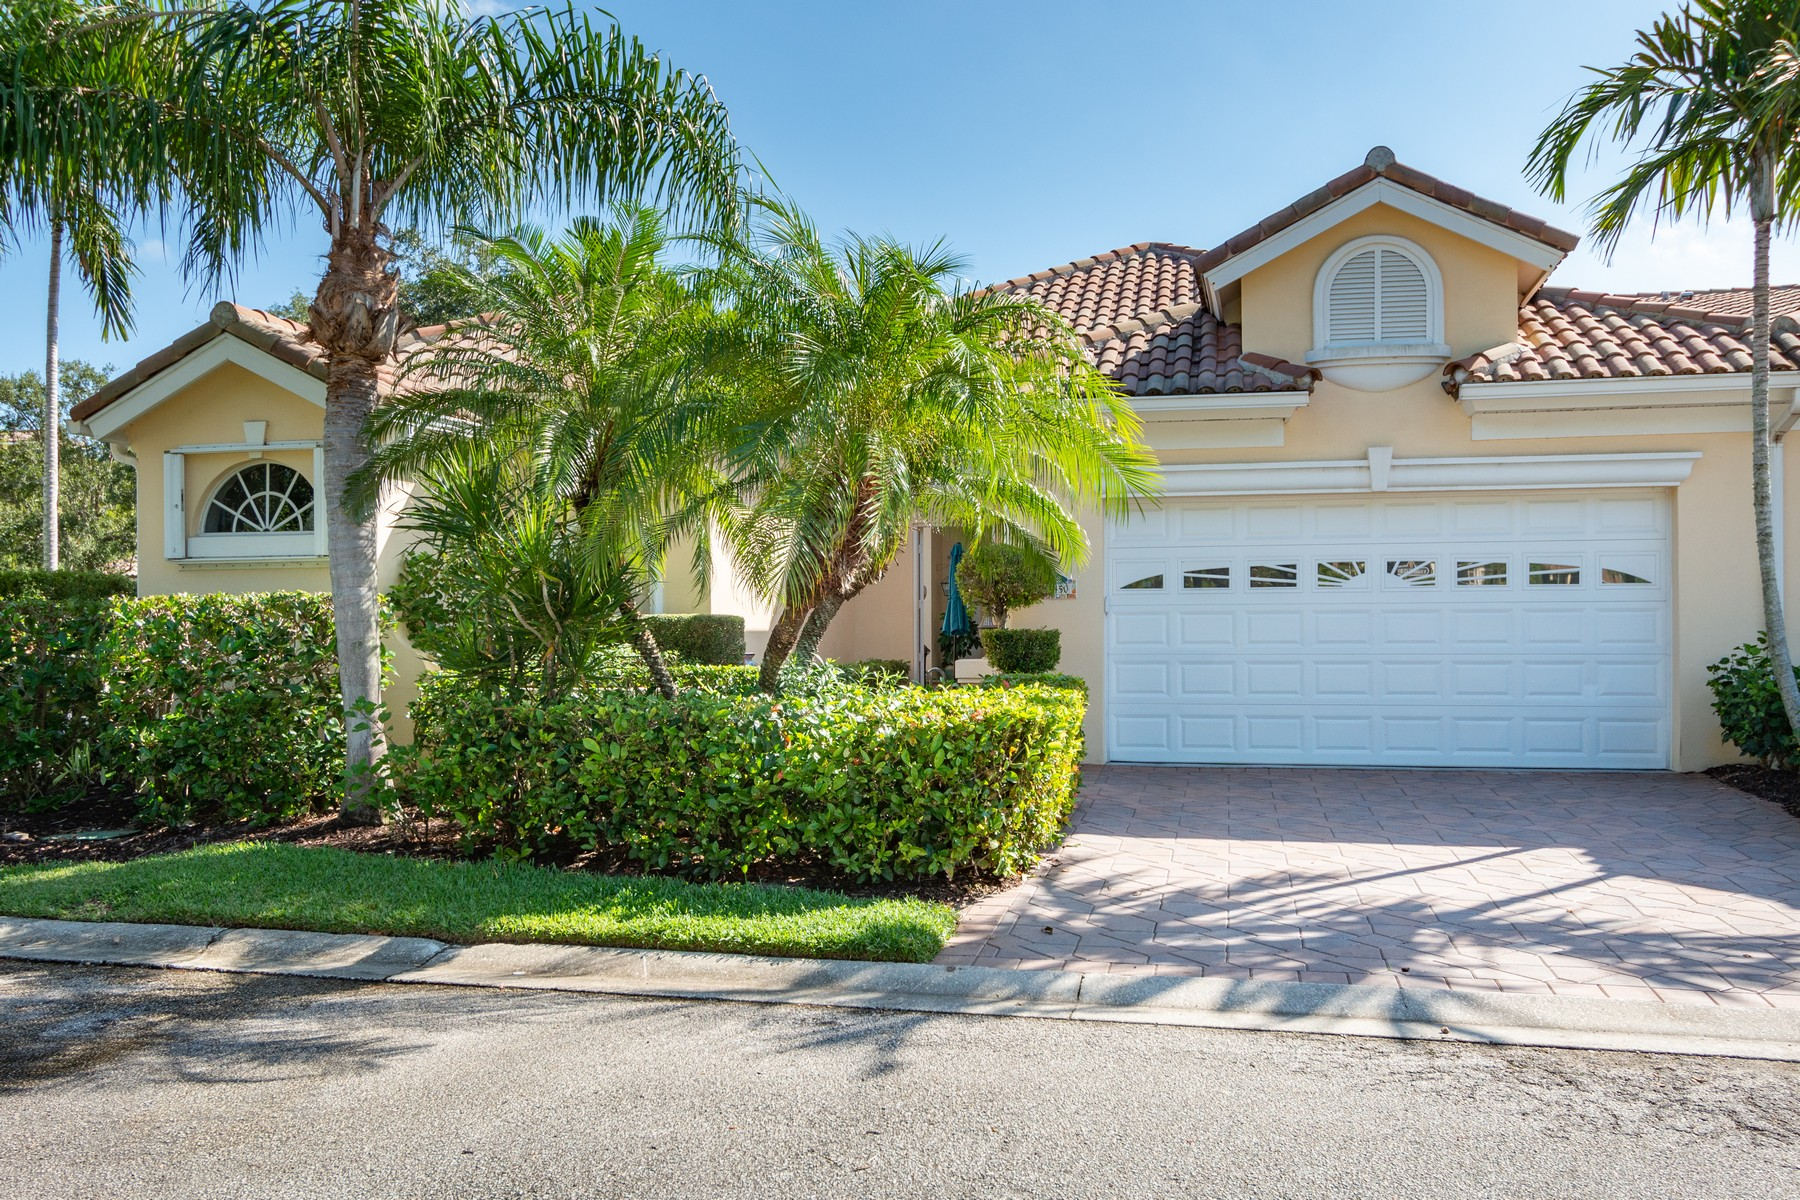 Single Family Homes for Sale at GRAND HARBOR MARINA FRONT COURTYARD POOL HOME 5450 W Harbor Village Drive Vero Beach, Florida 32967 United States